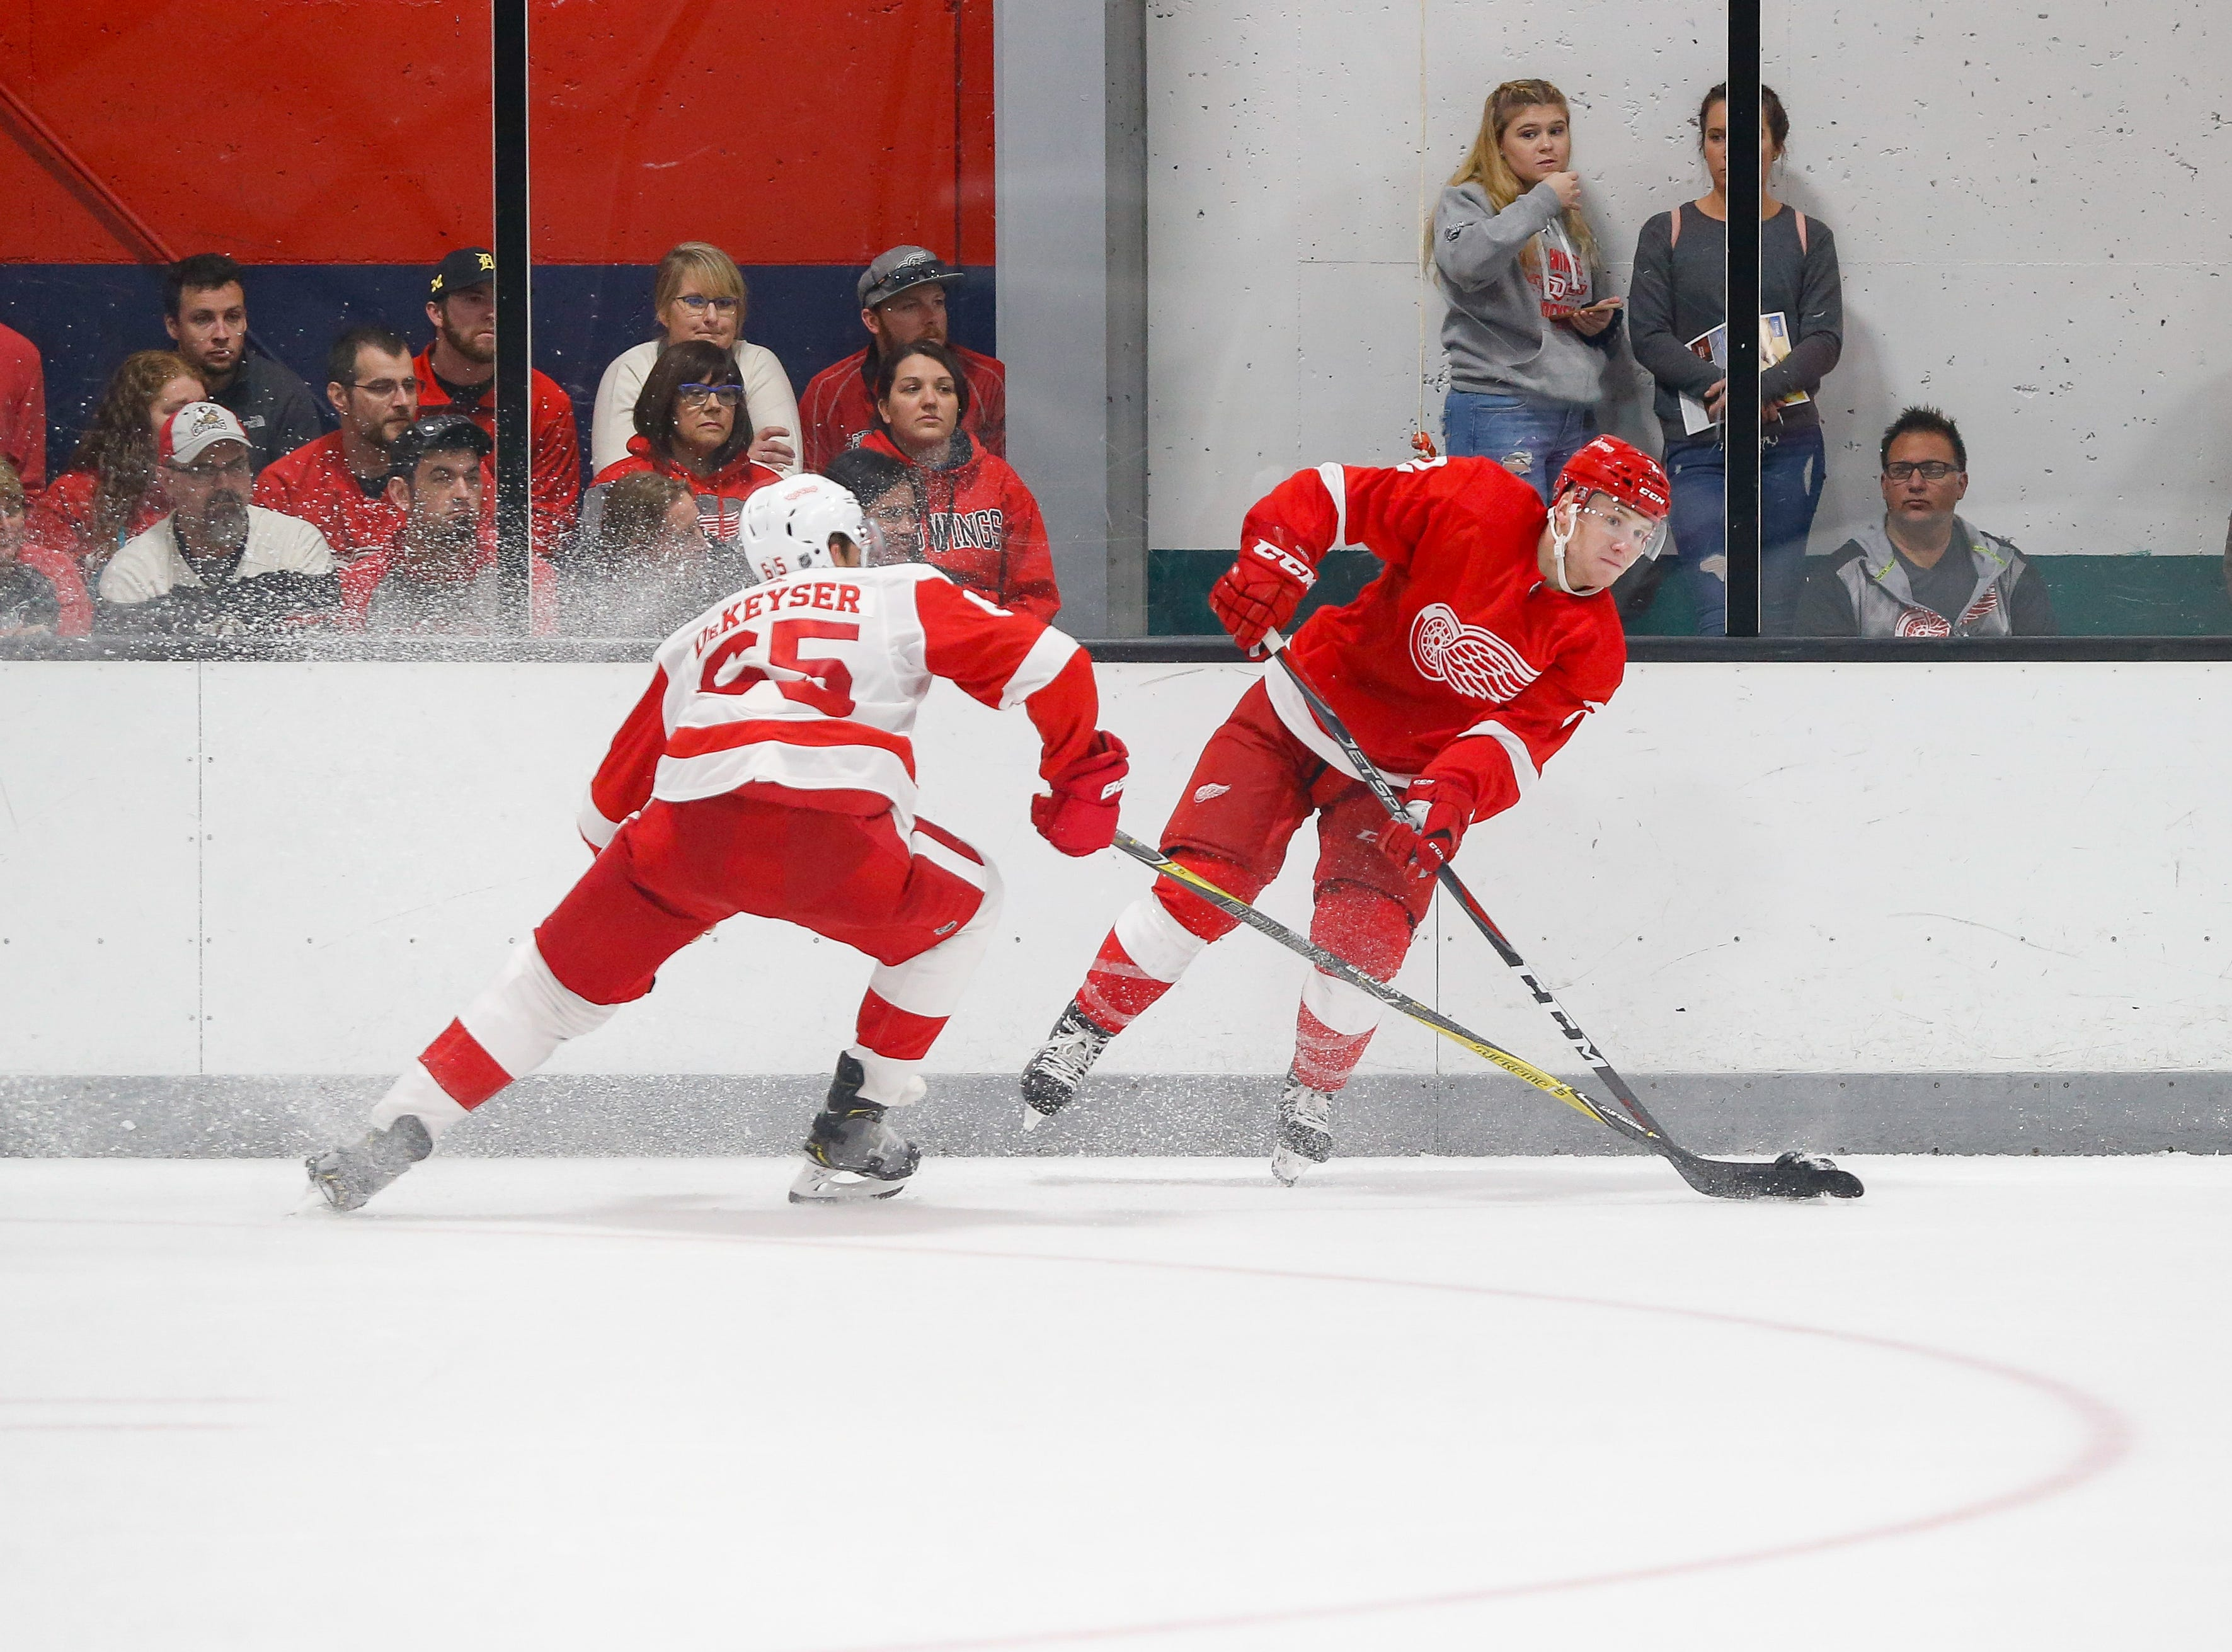 Danny DeKeyser tries to poke the puck off the stick of Red defenseman Joe Hicketts.